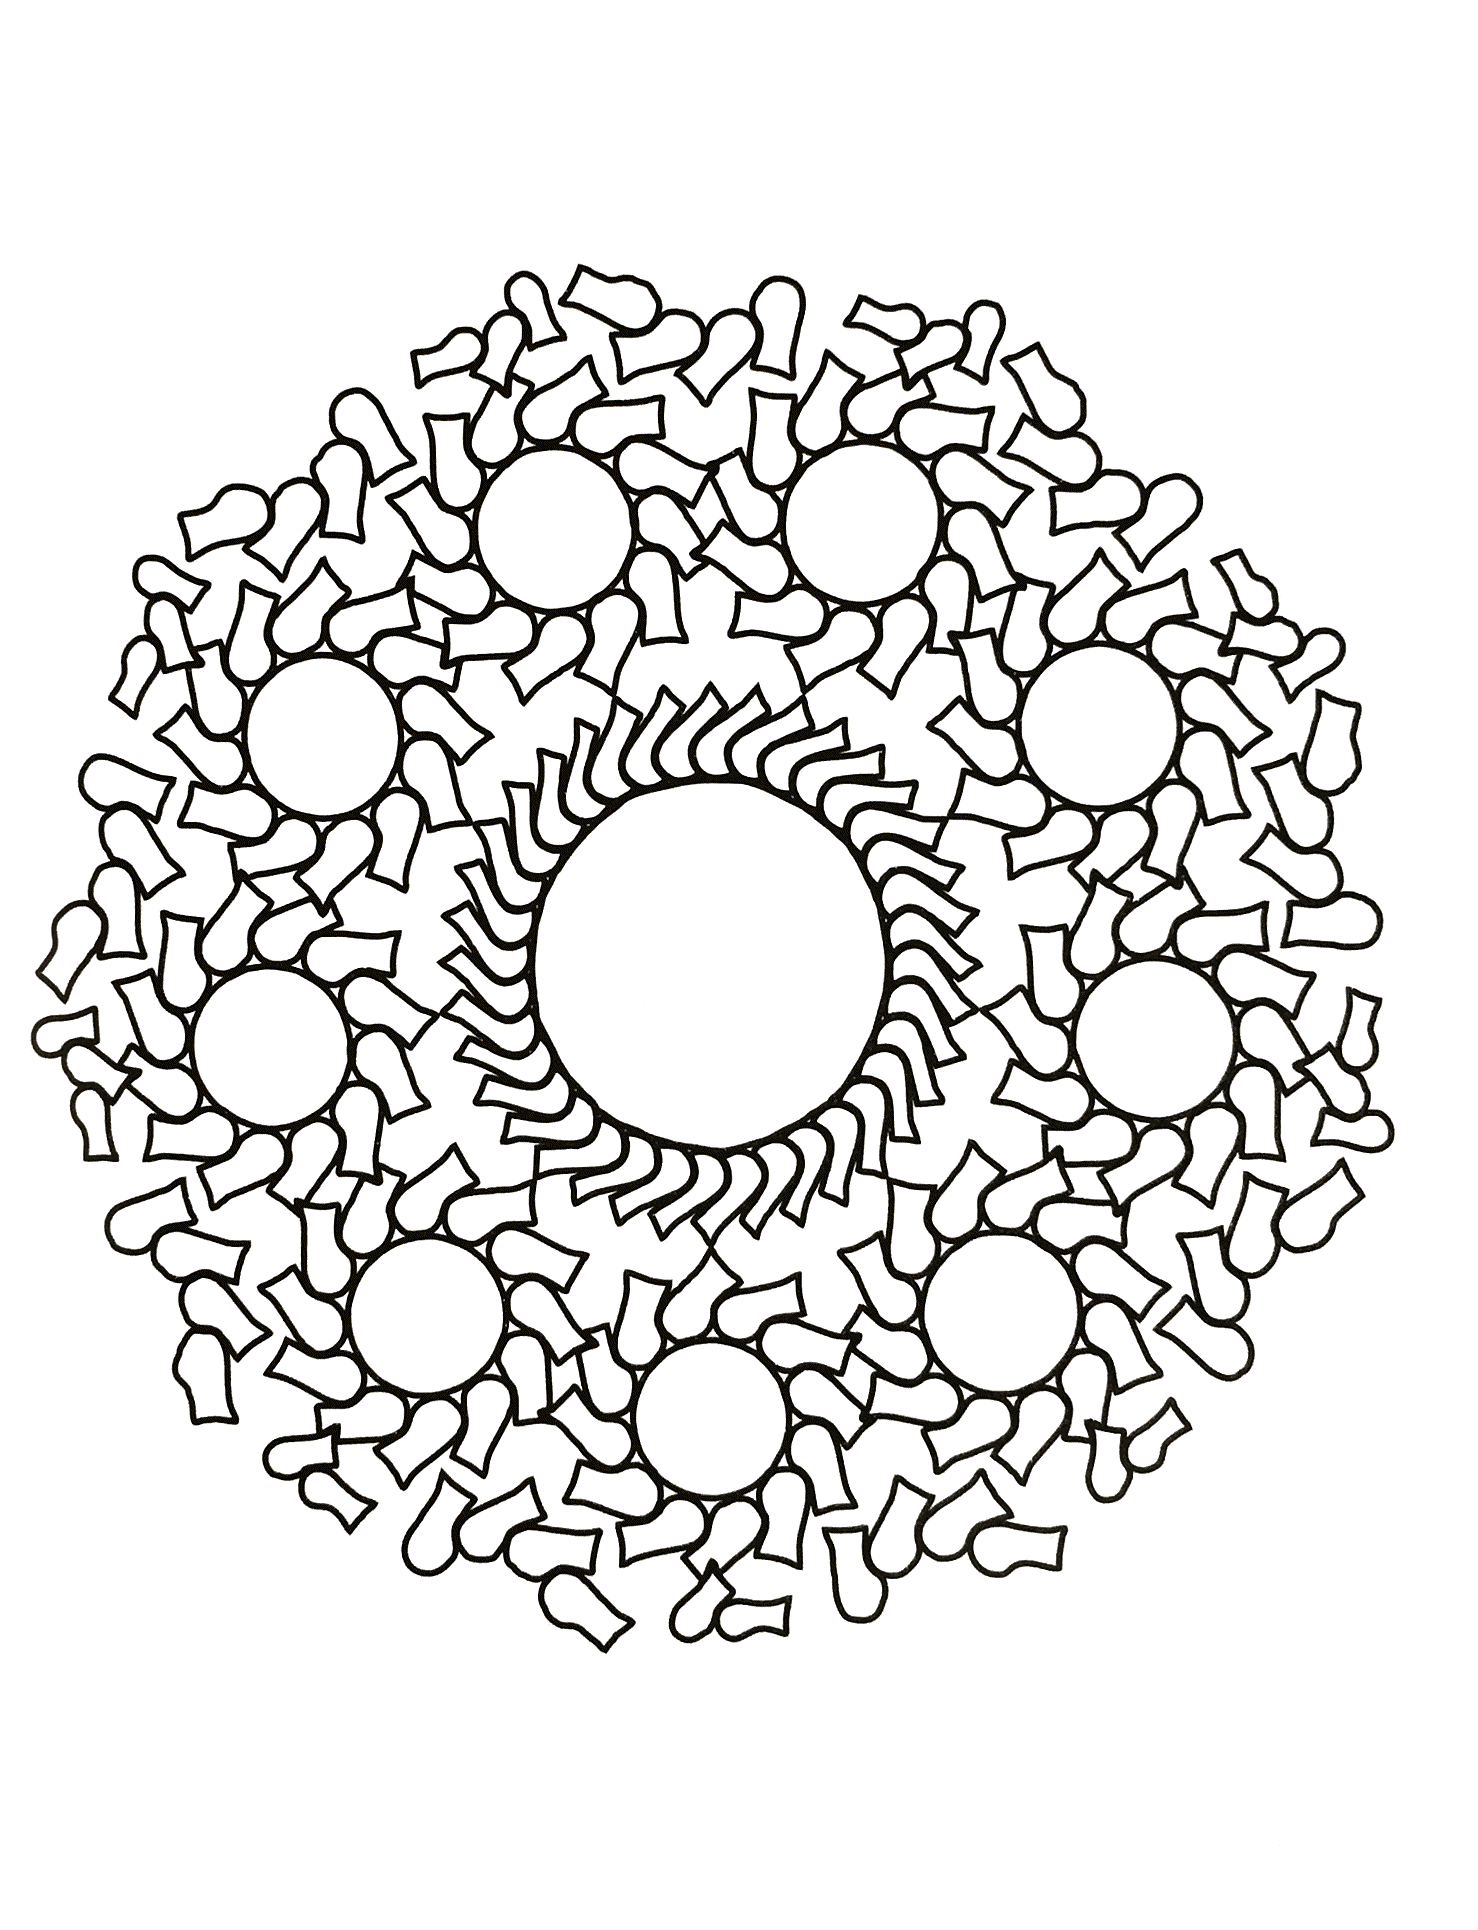 Unique Zen & Anti-stress Mandala. Designing and coloring mandalas give you a feeling of calmness. The practice of coloring generates wellness, quietness and also stimulates brain areas related to motor skills, the senses and creativity.